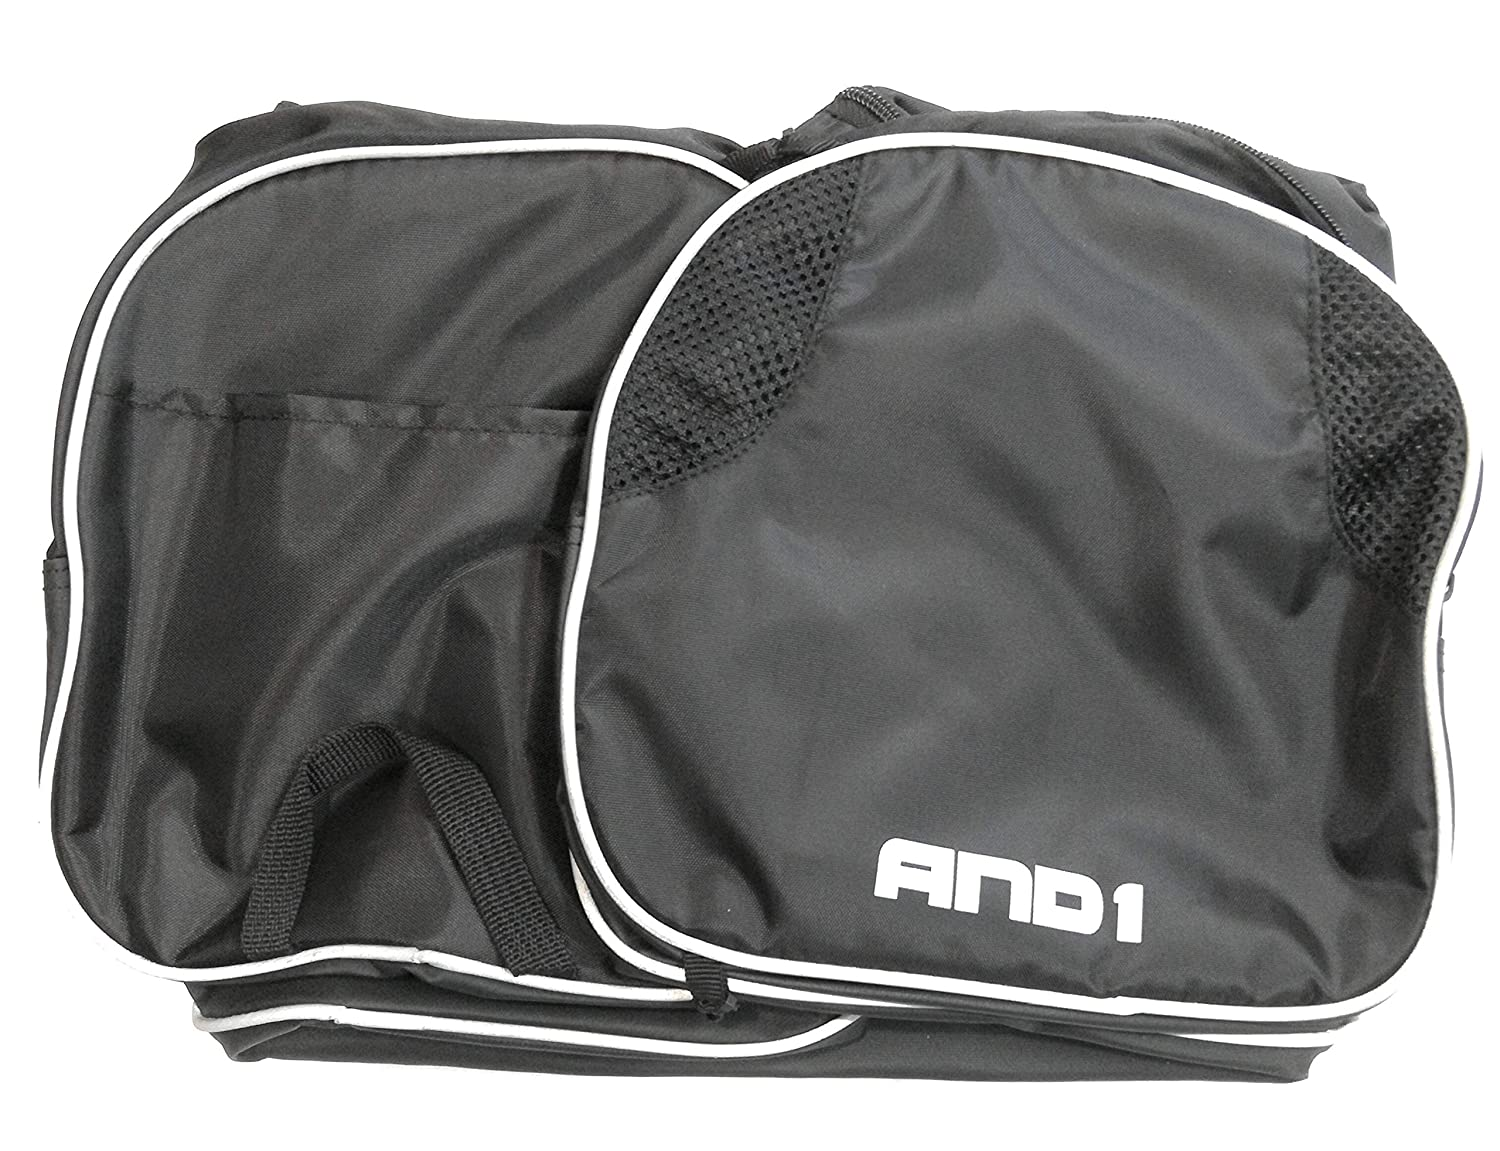 AND 1 Active Duffle Bag Black//Silver 20.25x10.25x11.25